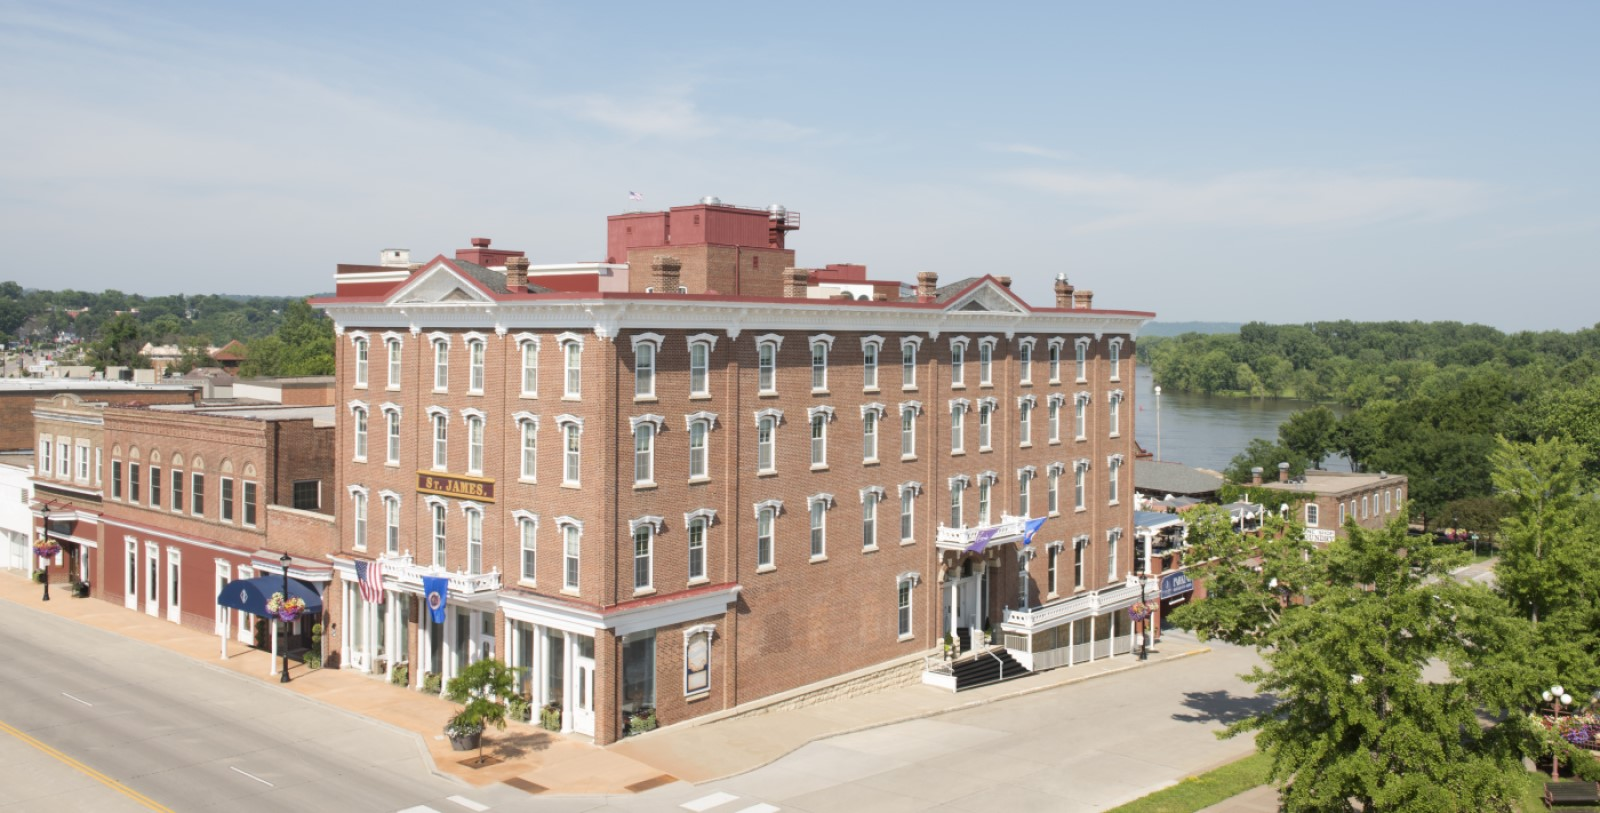 Image of Hotel Exterior St. James Hotel, 1875, Member of Historic Hotels of America, in Red Wing, Minnesota, Overview